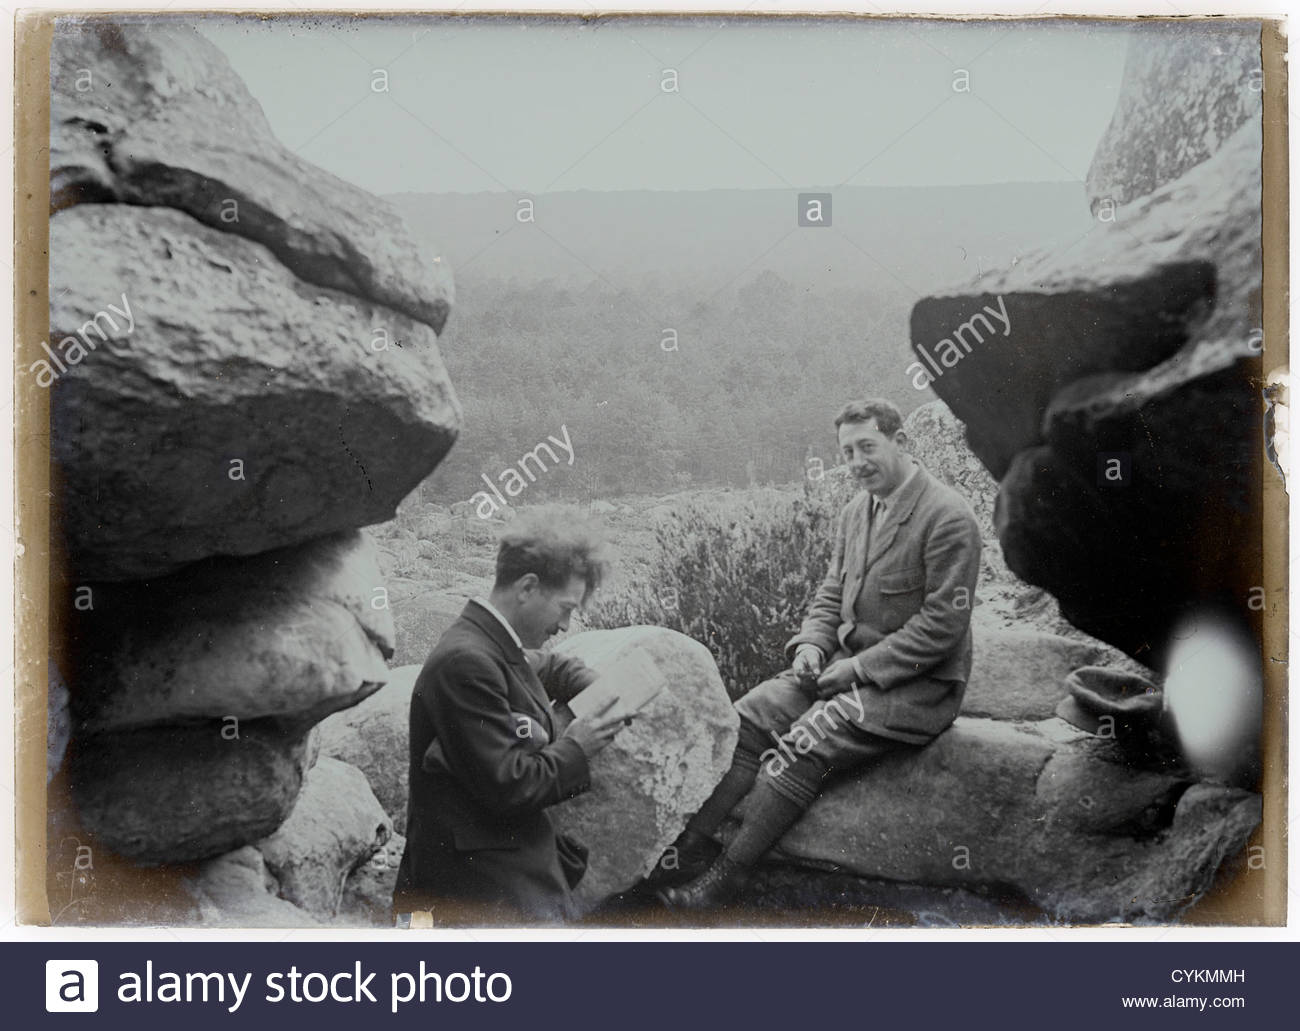 two men resting during a hiking trip early 1900s - Stock Image